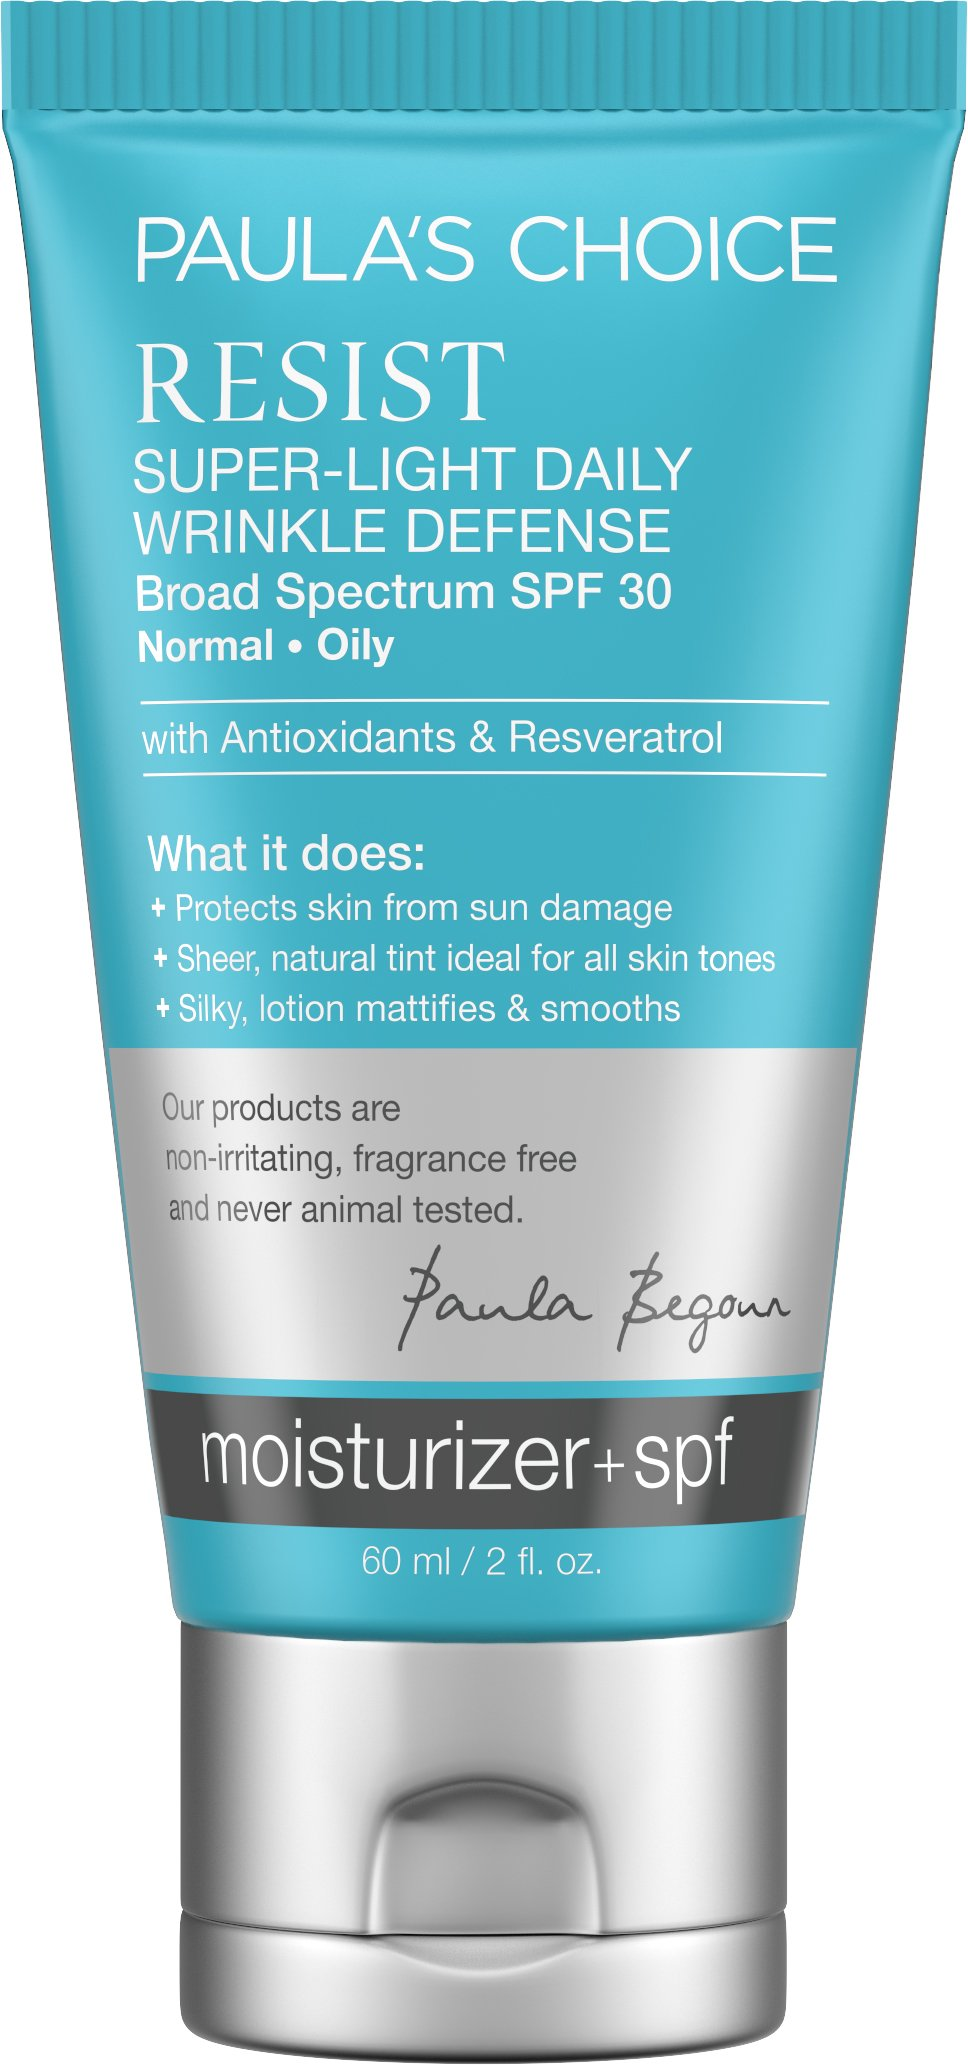 Paula's Choice--RESIST Super-Light Daily Wrinkle Defense SPF 30 Tinted Matte Moisturizer with Antioxidants and Resveratrol--For the Face--1-2 oz Tube